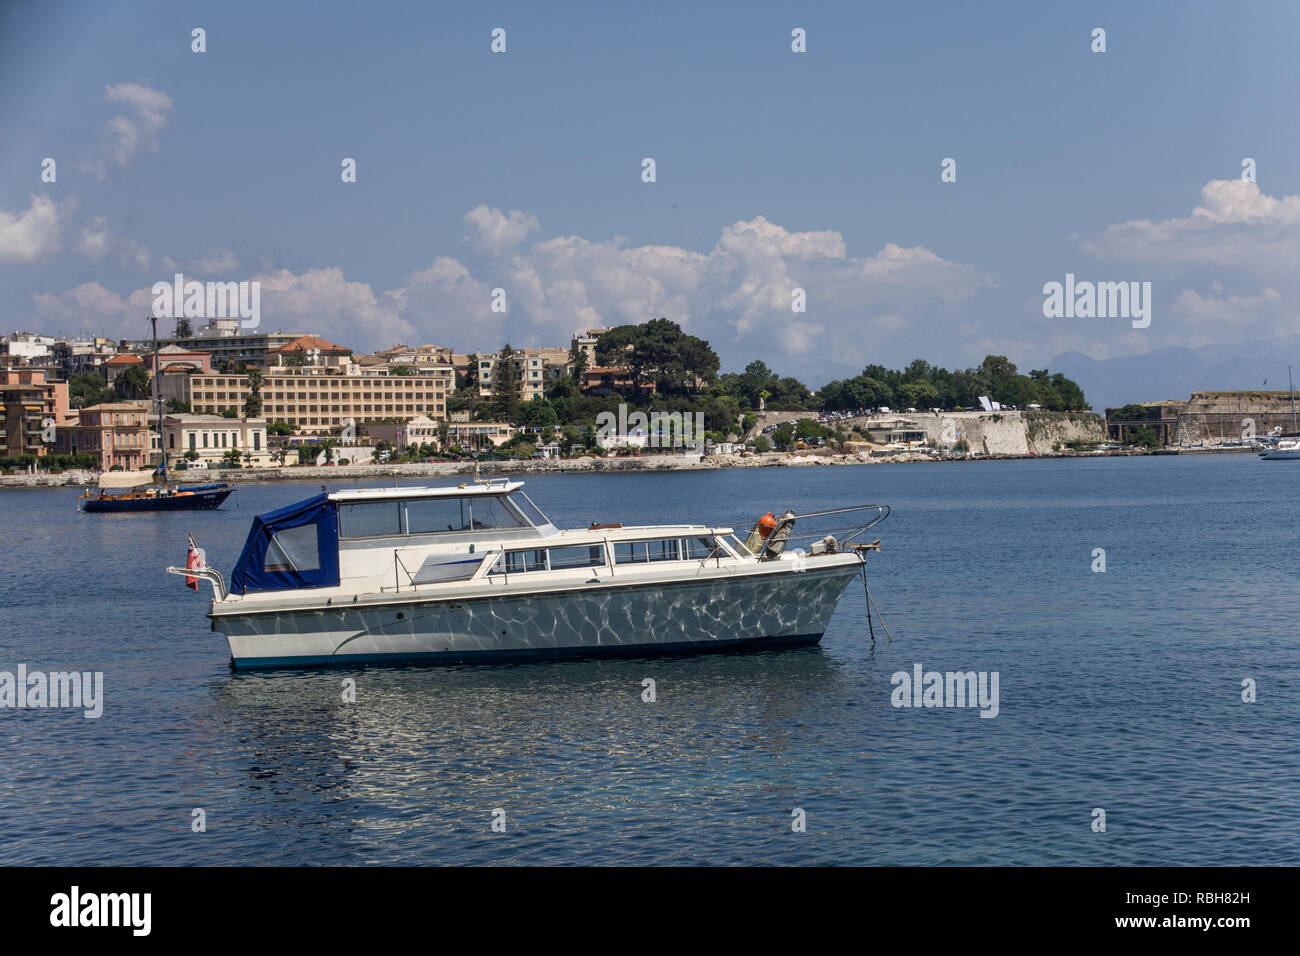 SideView Shot of Unmanned Double Deck Boat on Water under Cloudy Blue Sky. Establishments, Structures and Trees as Background. Vacation Destination Id - Stock Image